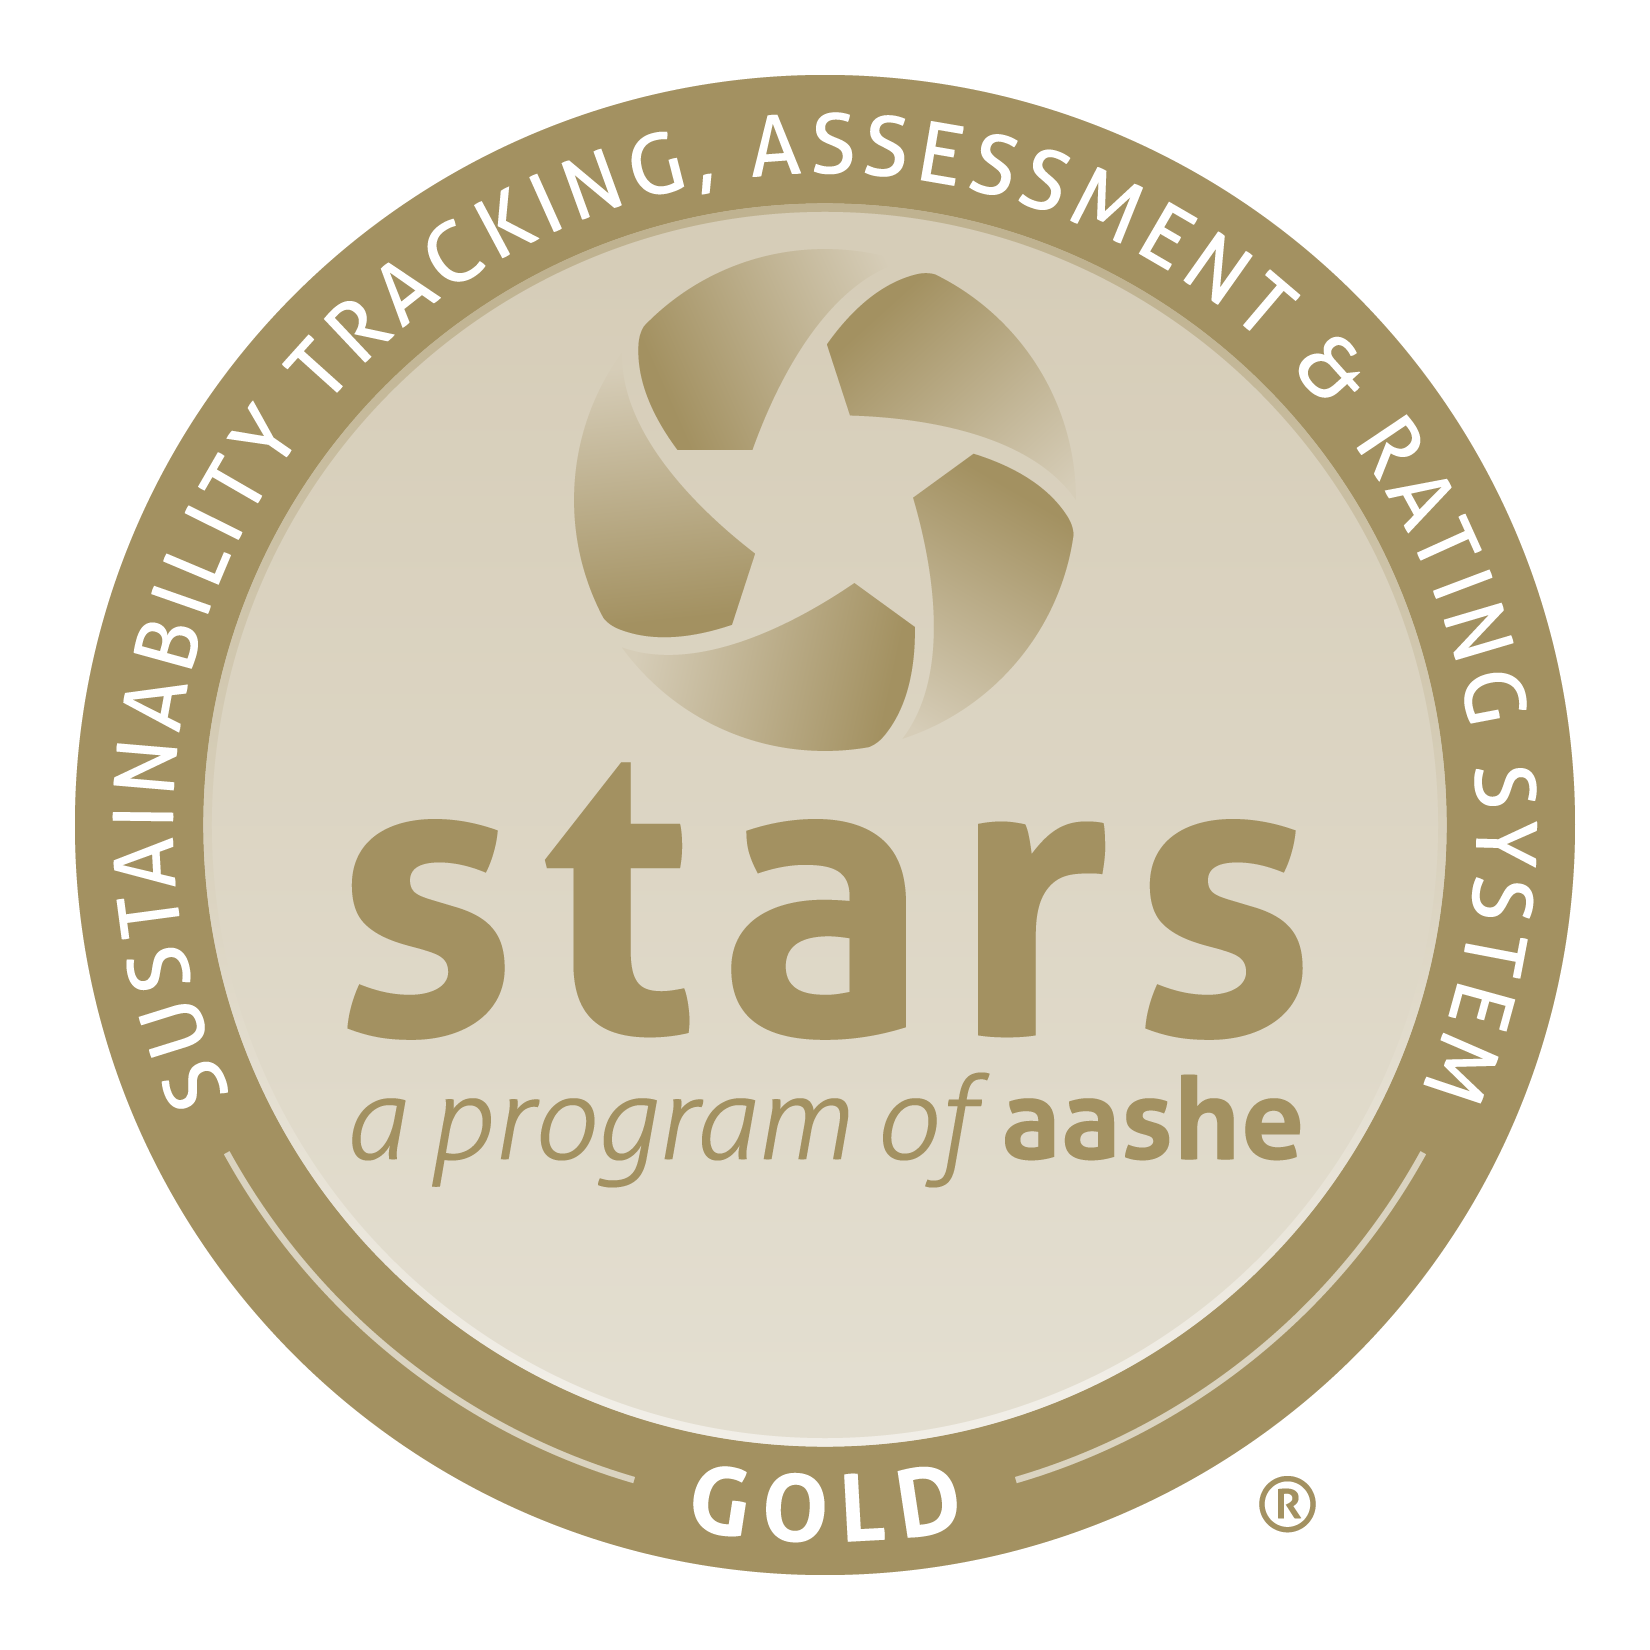 Stevens Institute of Technology Receives STARS Gold Rating for Sustainability Achievements